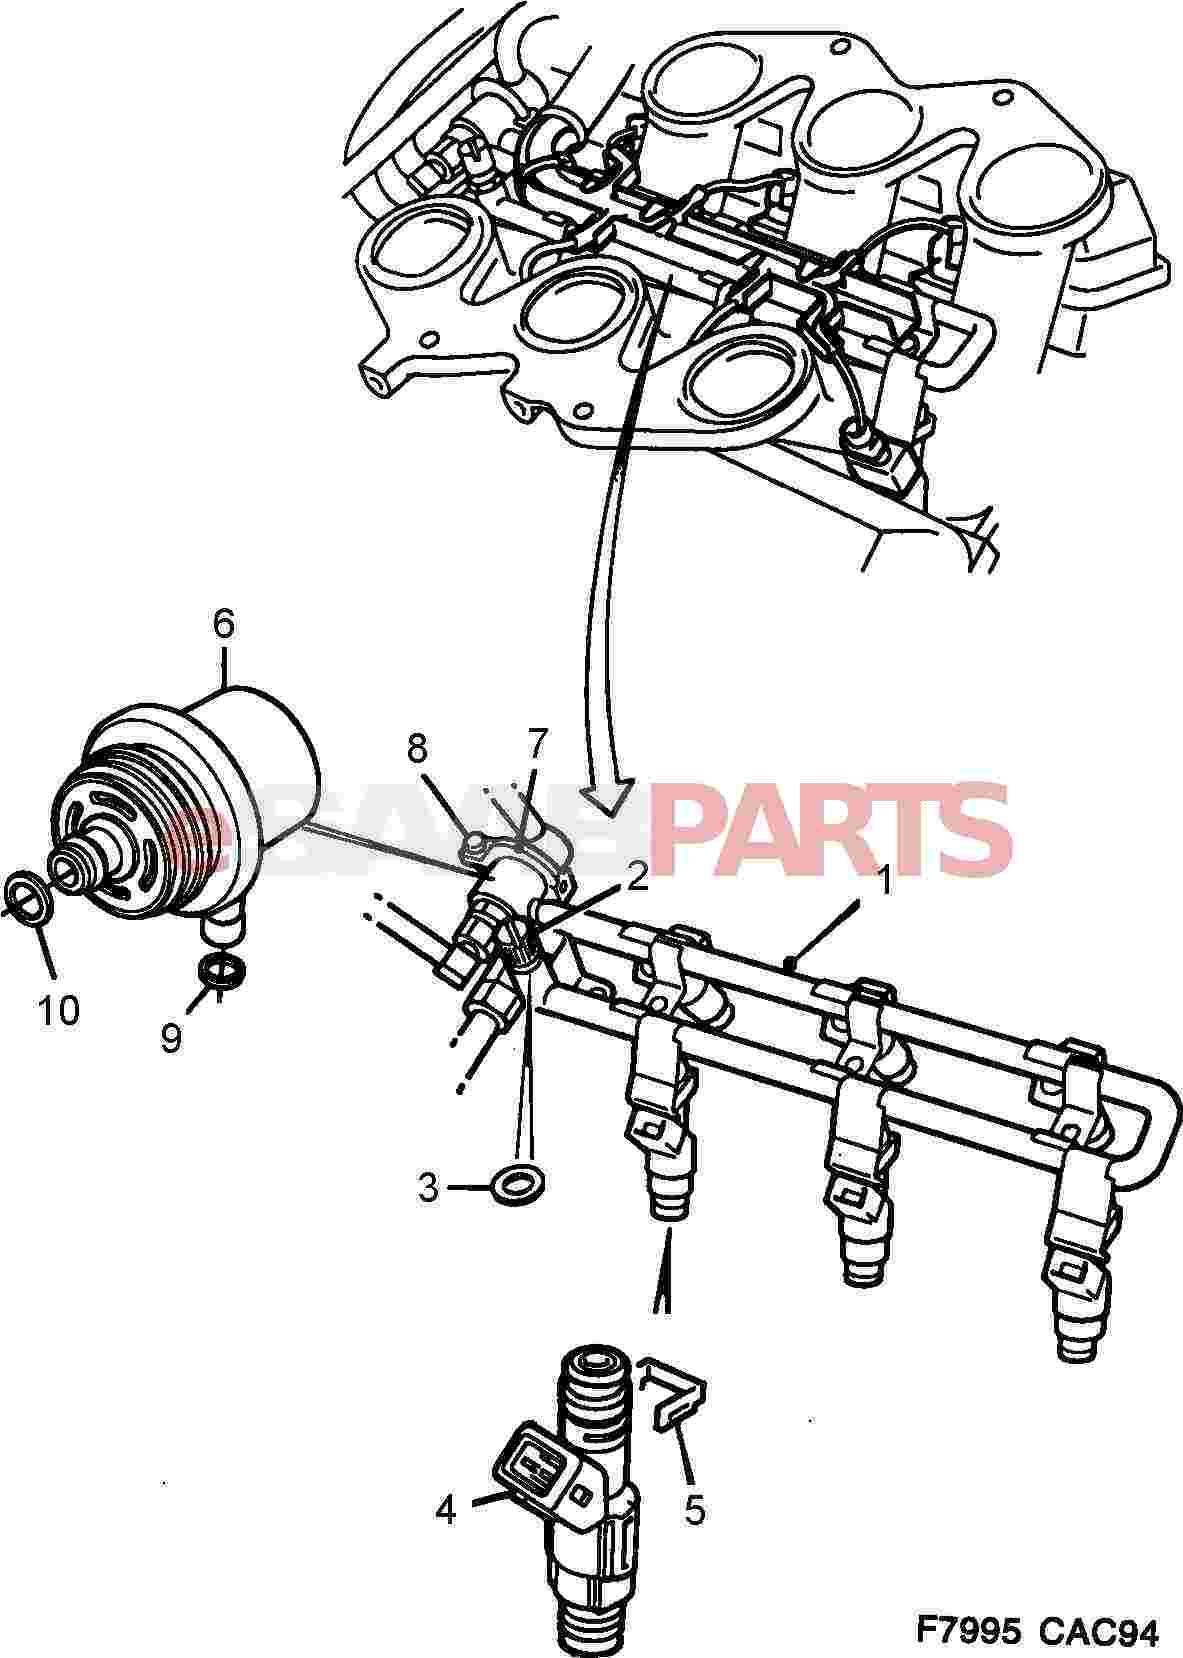 hight resolution of saab fuel pressure diagram wiring diagrams saab 9000 fuel system diagram just wiring diagram saab fuel